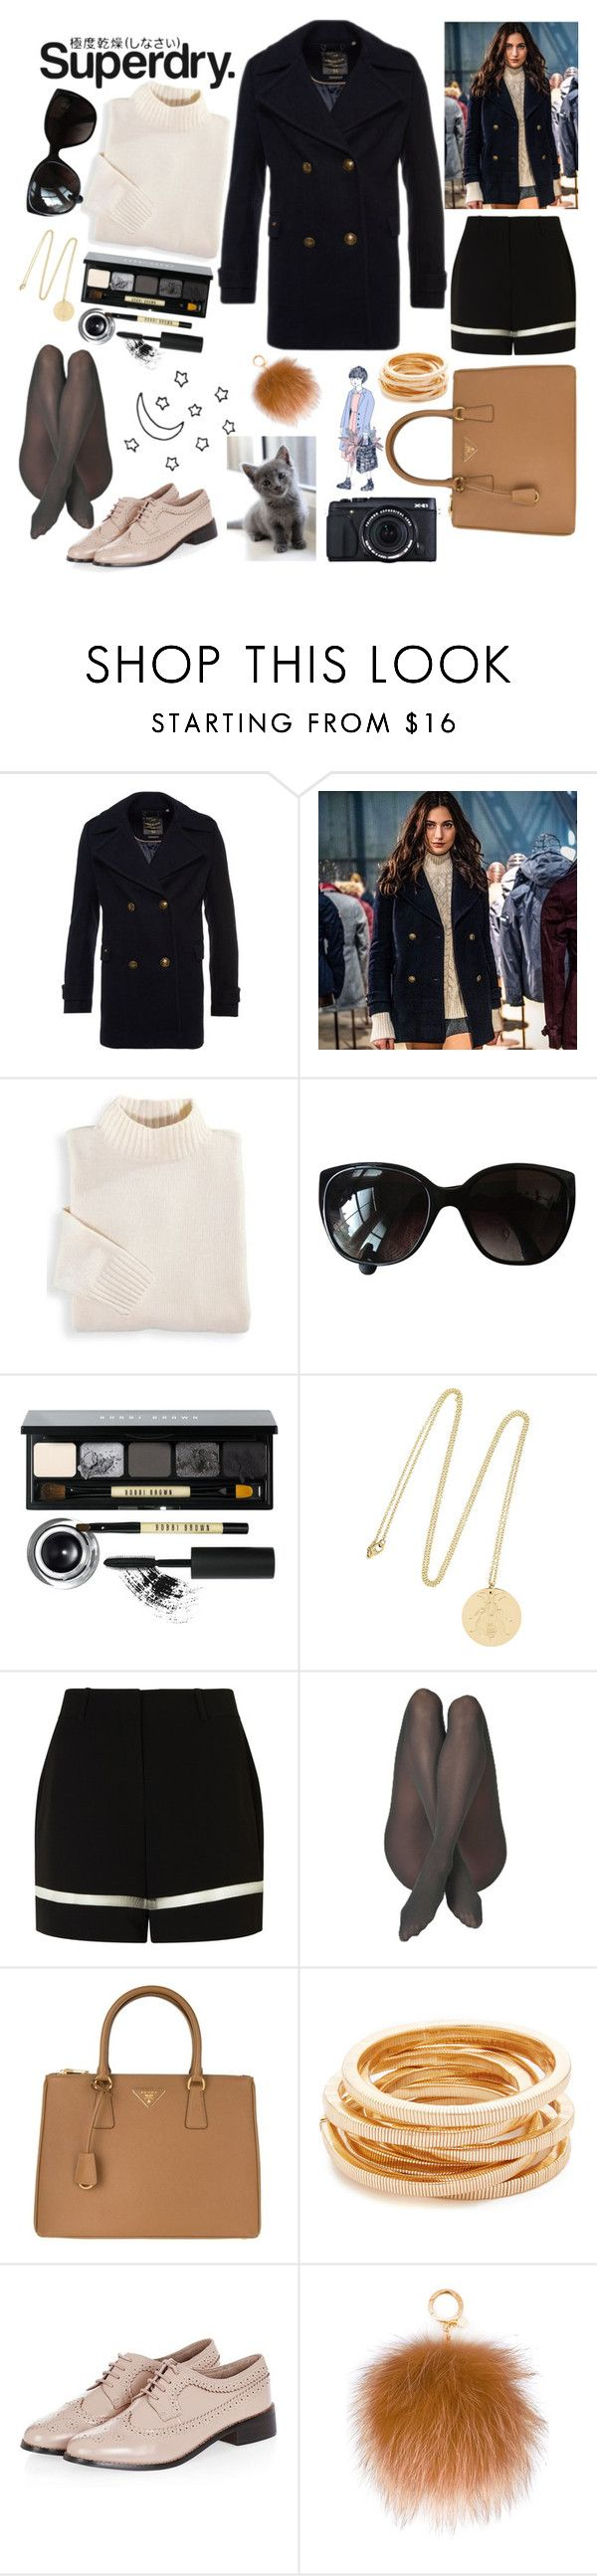 """""""The Cover Up – Jackets by Superdry: Contest Entry"""" by bartivana ❤ liked on Polyvore featuring Superdry, Blair, Chanel, Bobbi Brown Cosmetics, Philippa Holland, Alexander Wang, Prada, Kenneth Jay Lane, Topshop and Fujifilm"""